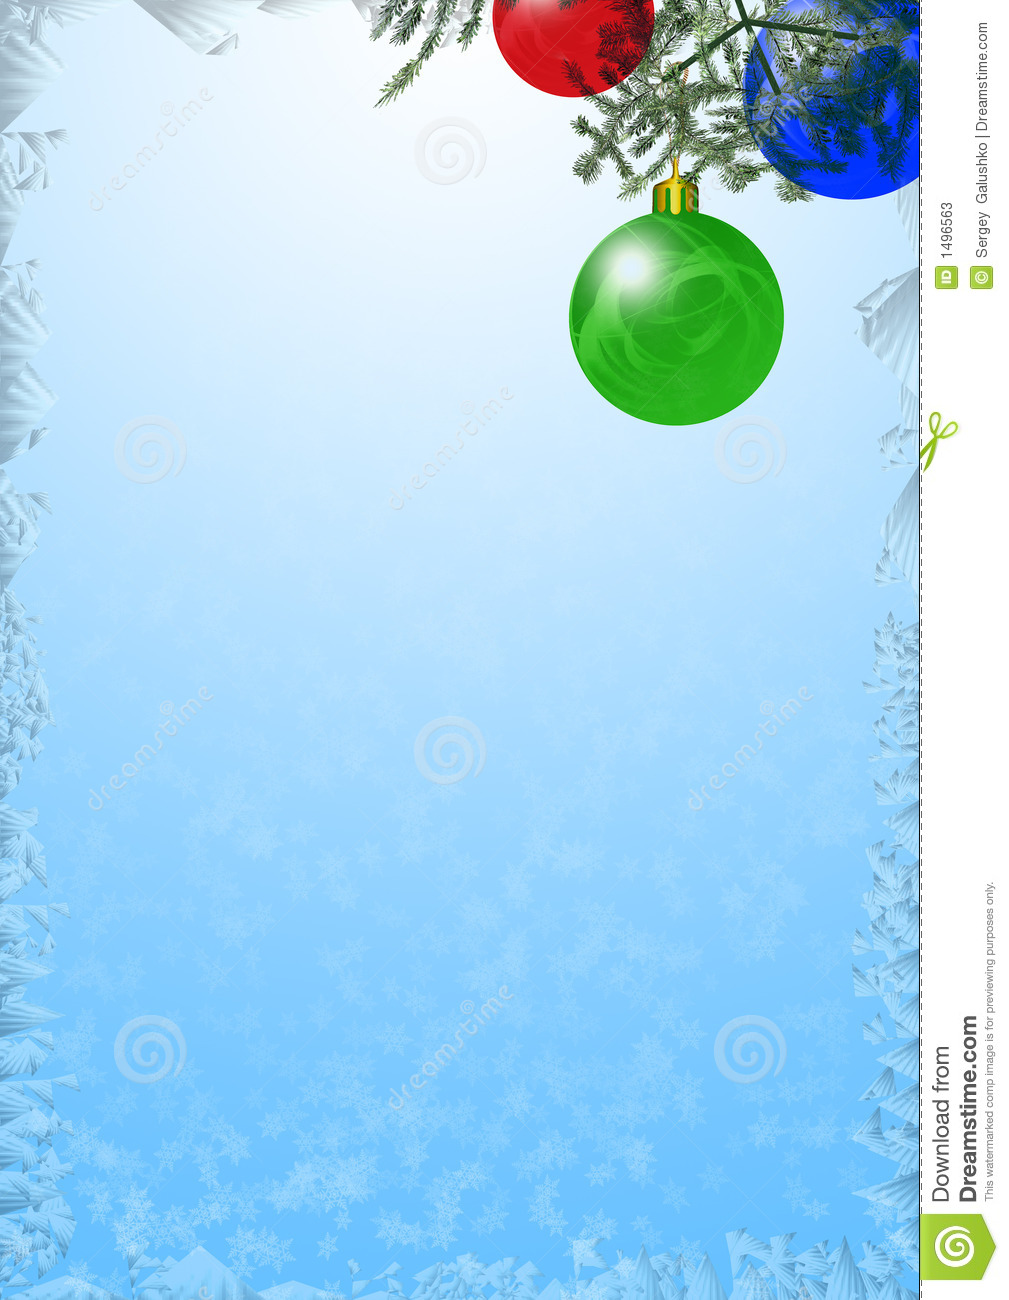 Christmas background stock illustration. Illustration of